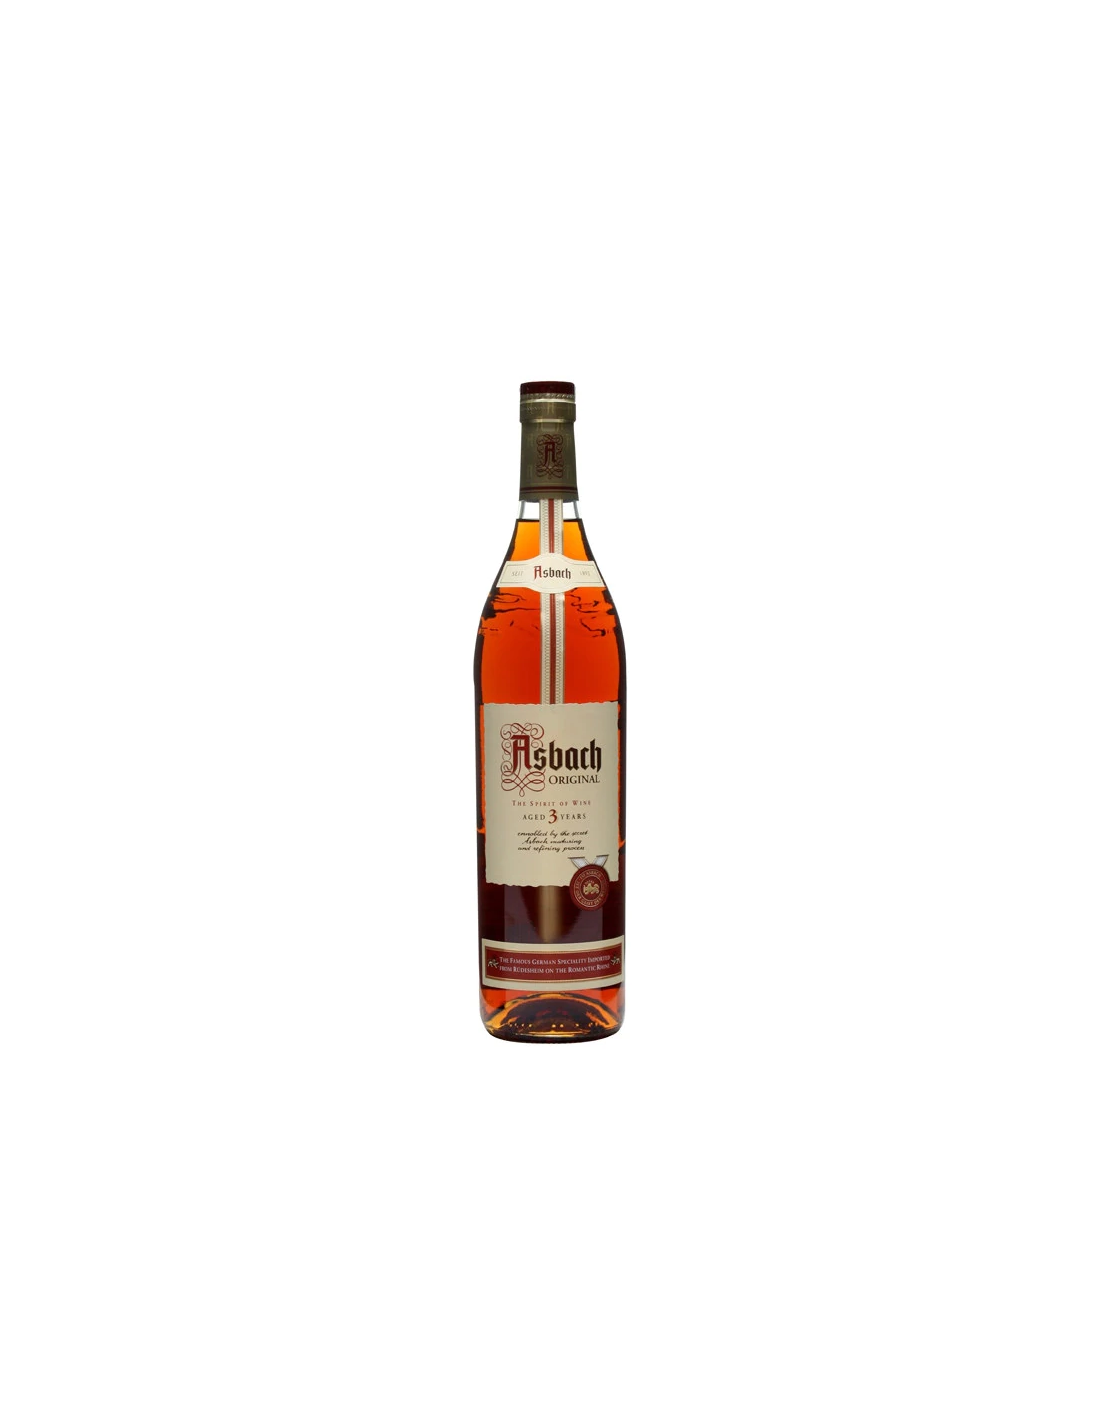 Brandy Asbach Original 3 ani, 38% alc., 0.7L, Germania